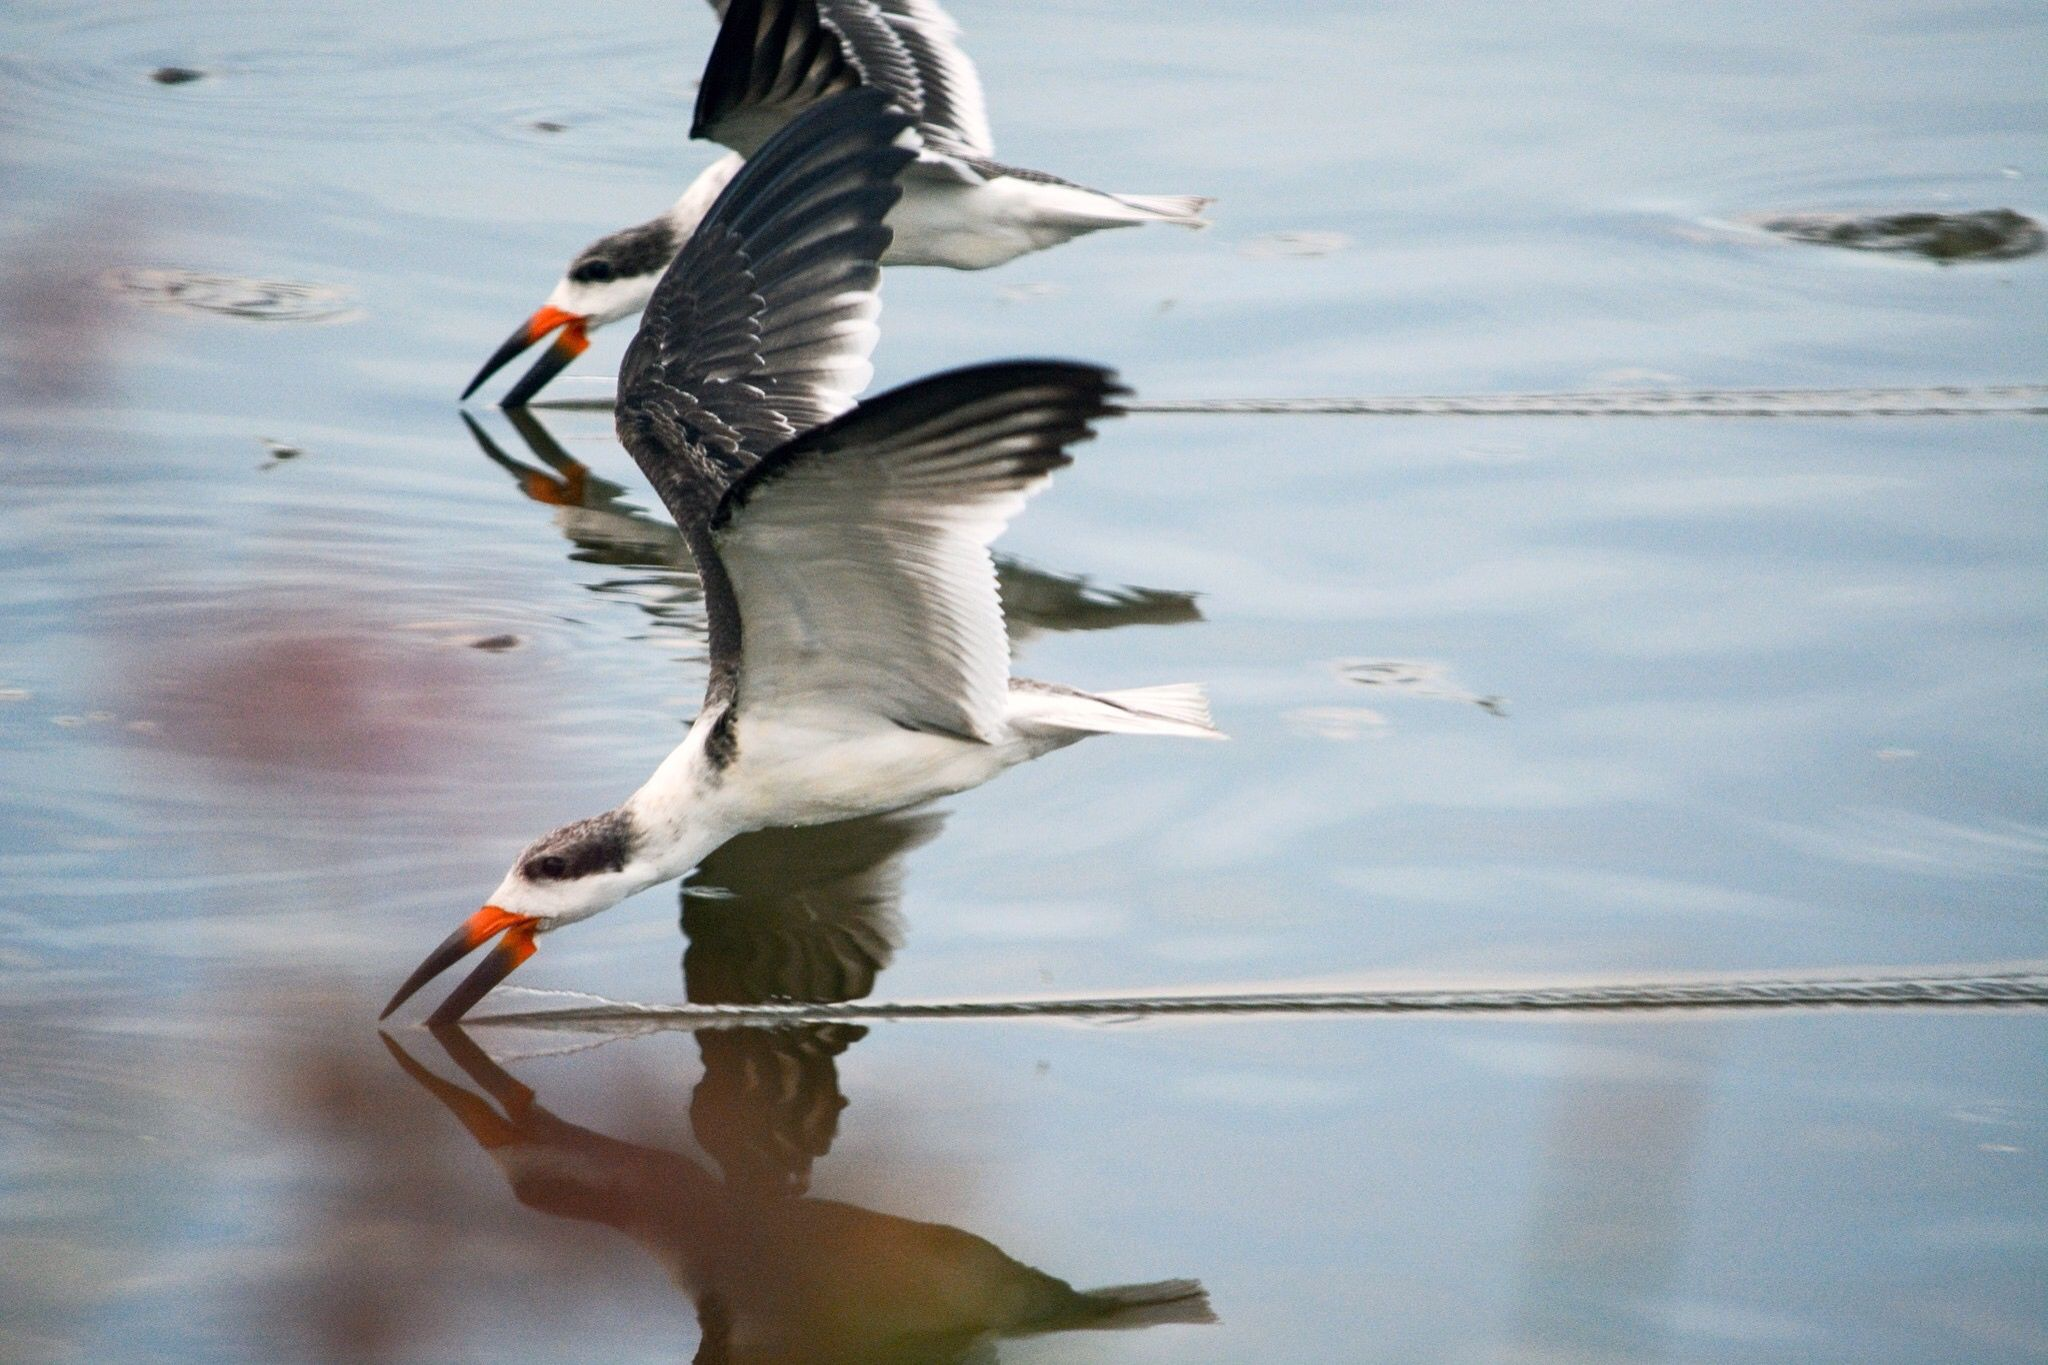 Black skimmers fishing at Huntington Beach State Park, SC